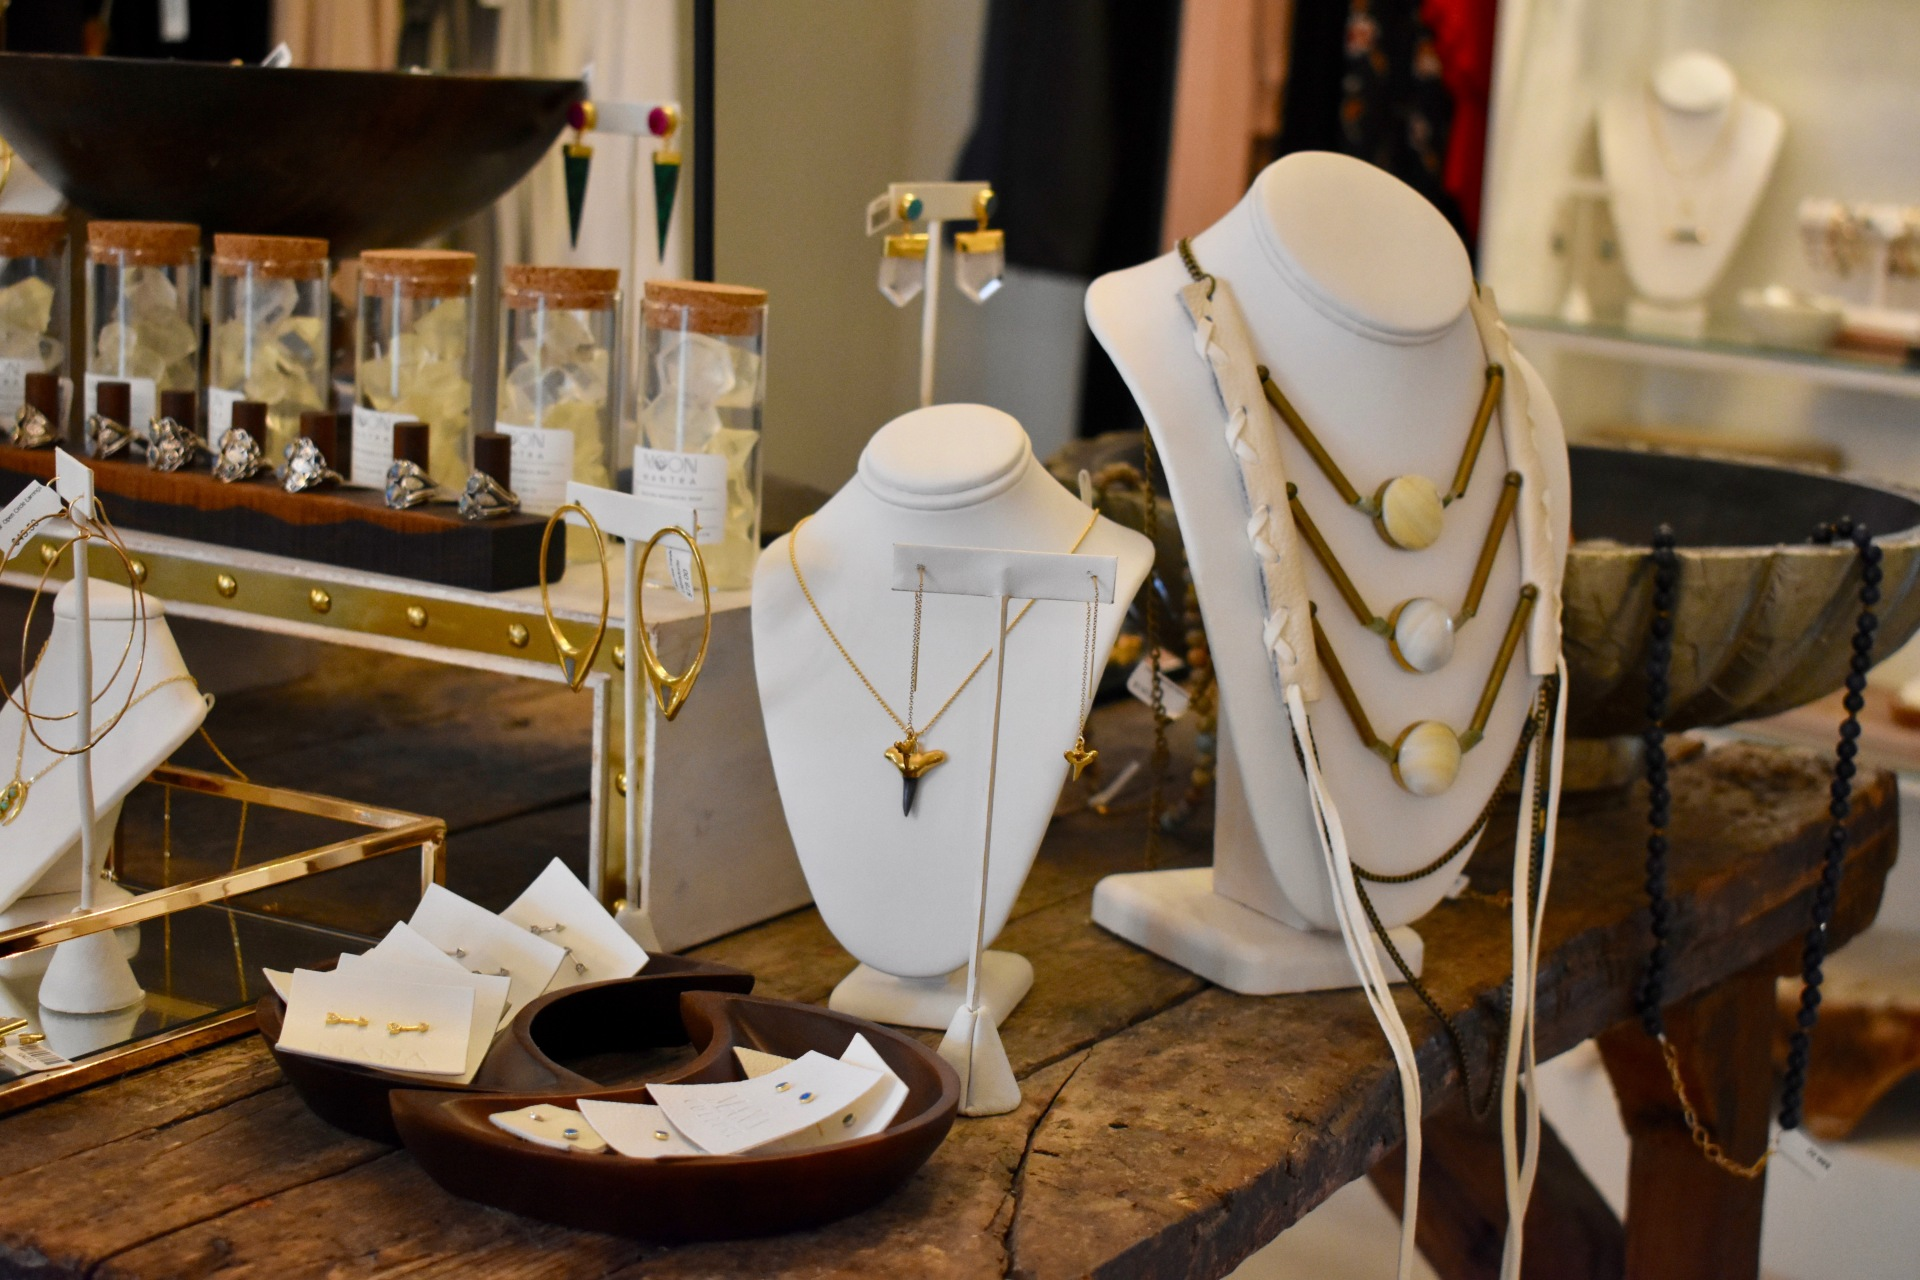 Daniela Perez visits local artisans to learn about their jewelry and their craftsmanship and history of their businesses